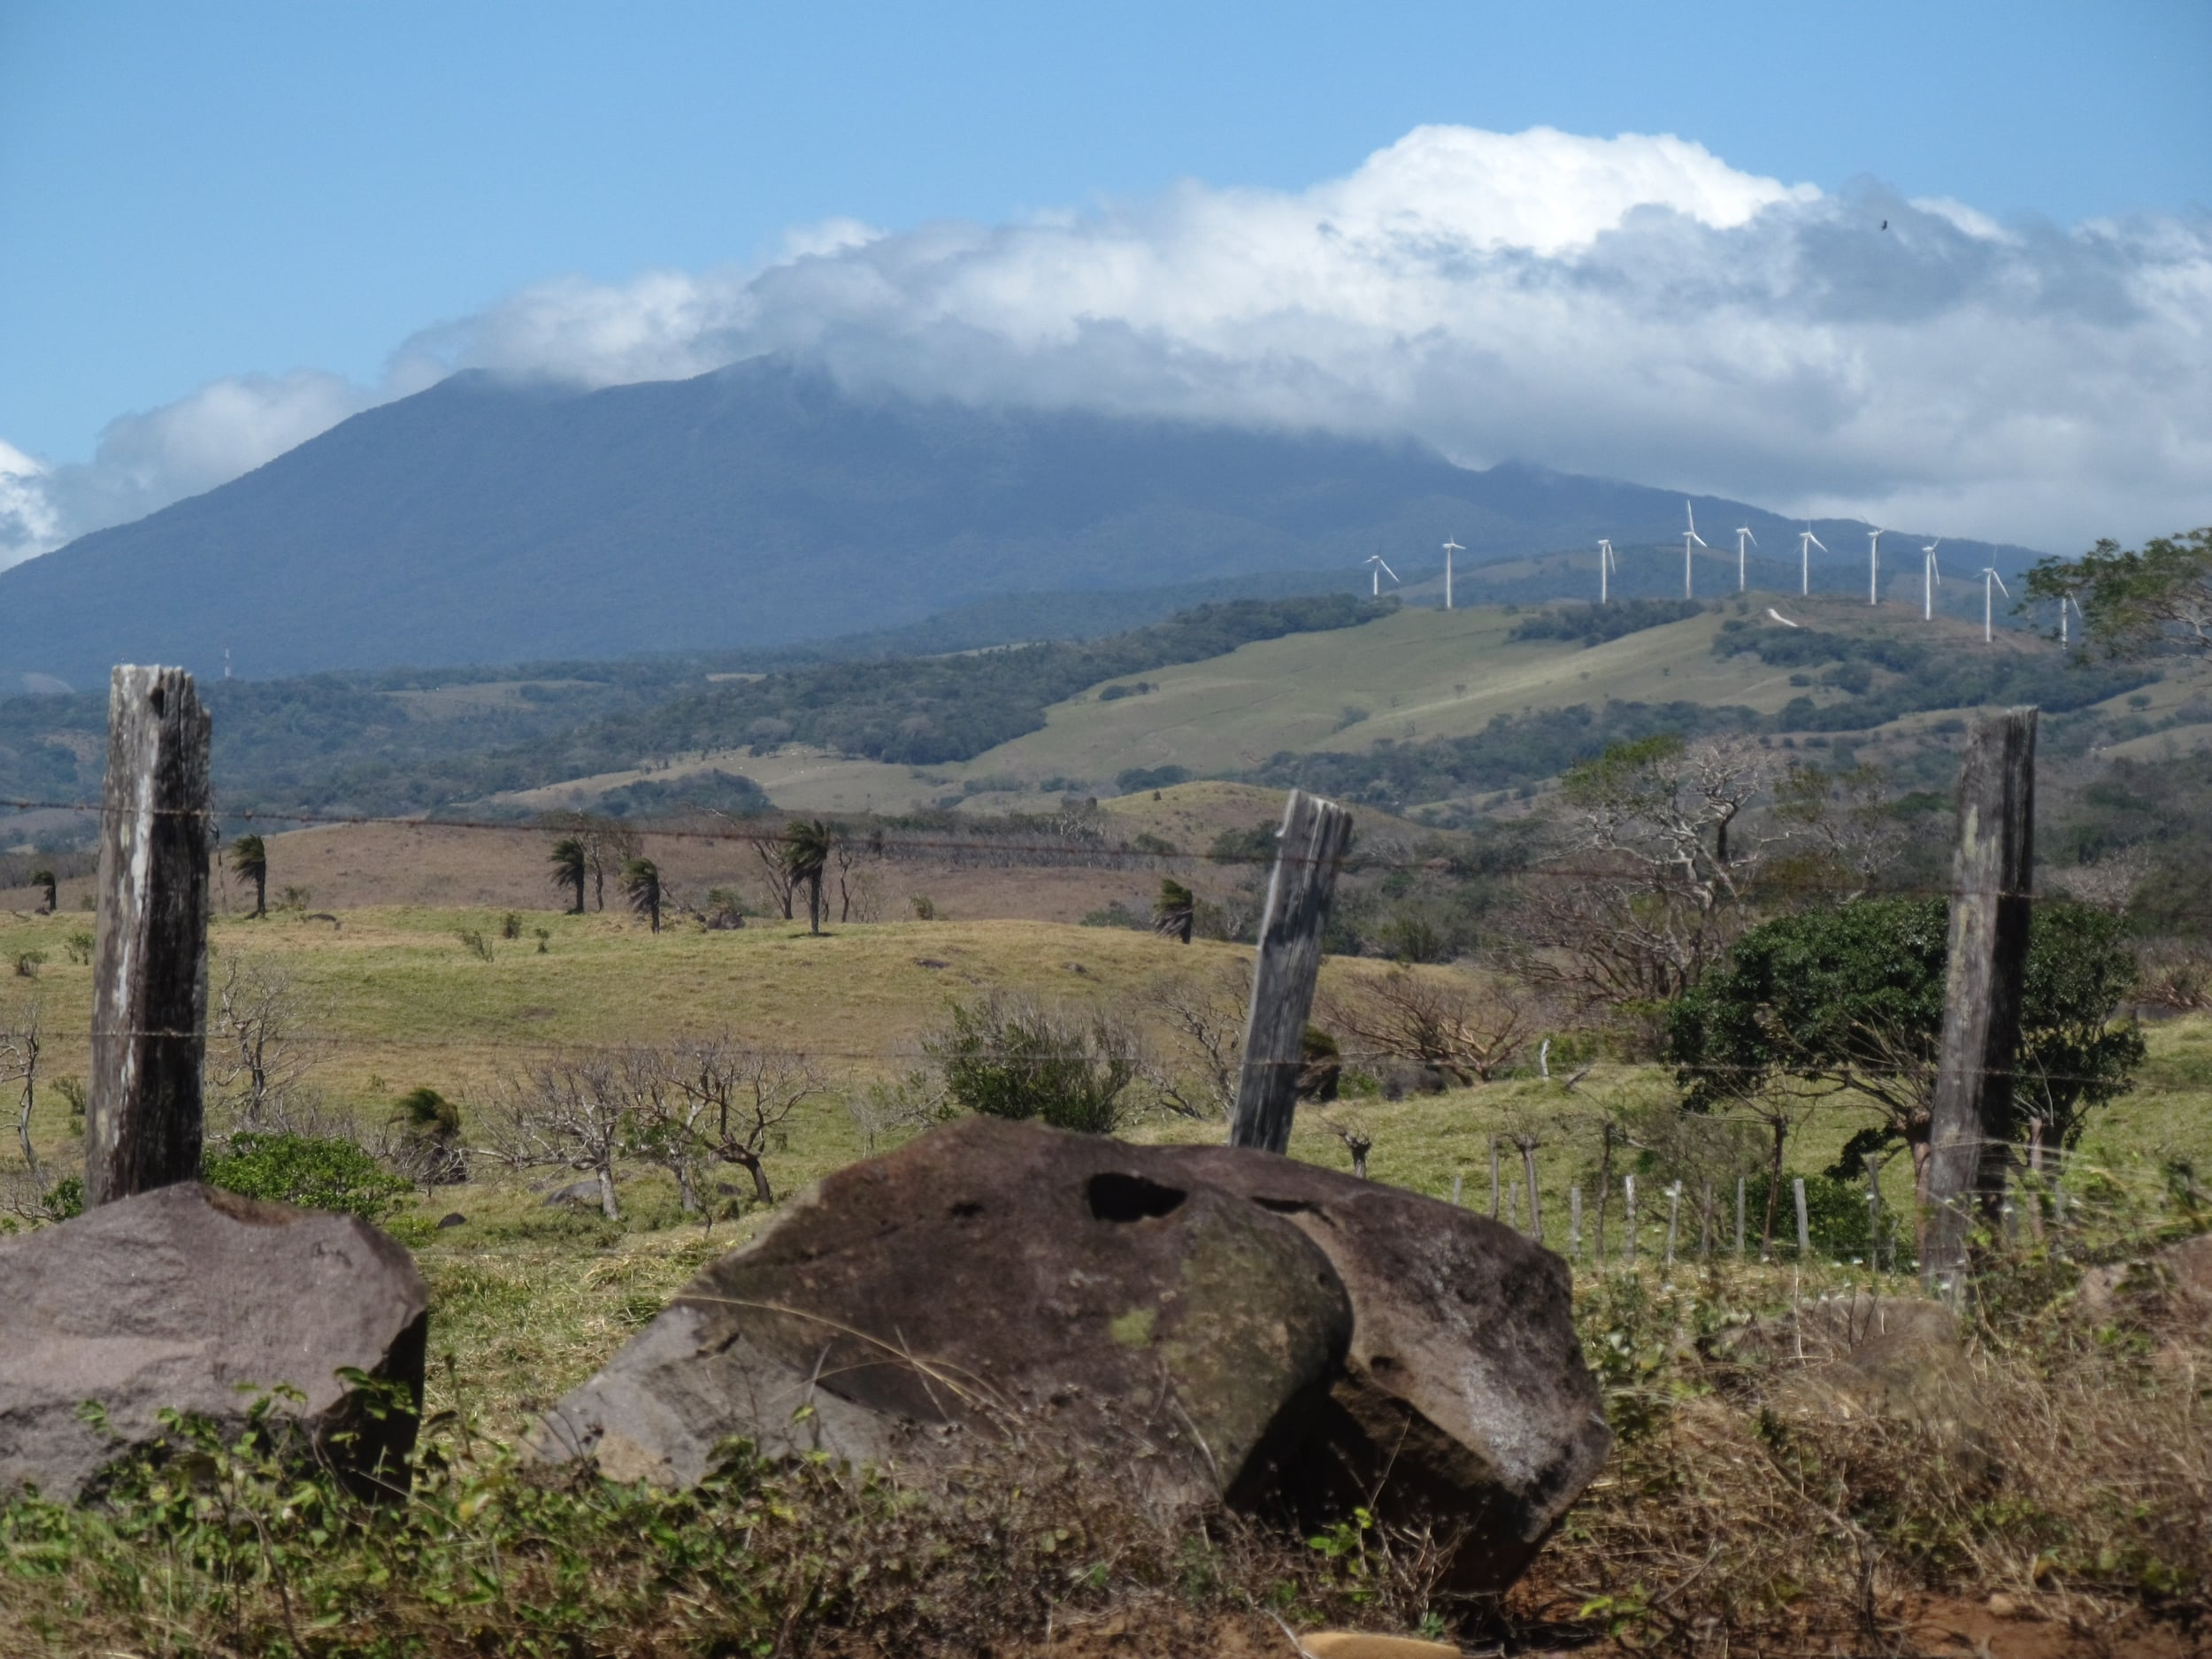 It was so windy as we climbed the mountains that windmills were a common sight.